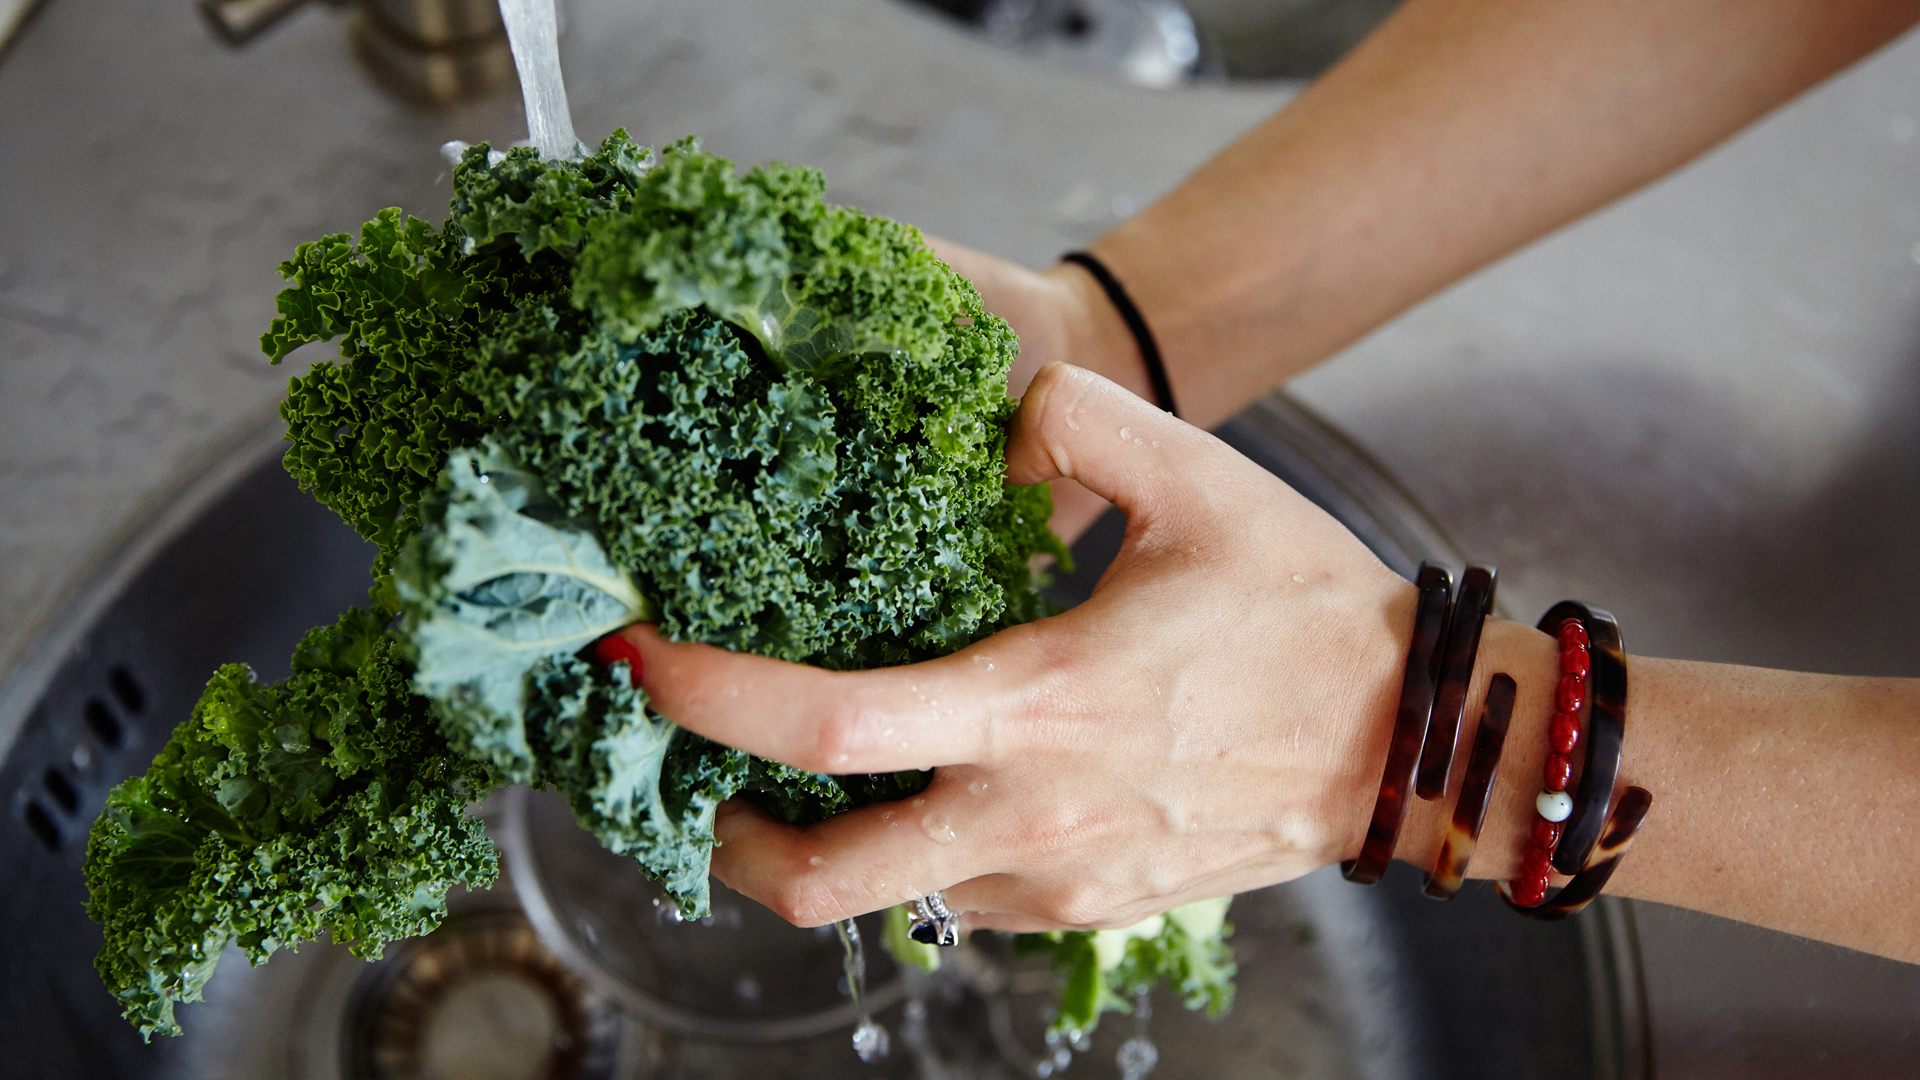 catherine-cuello-washing-kale-for-her-sweet-potato-kale-and-chives-recipe-foodadit